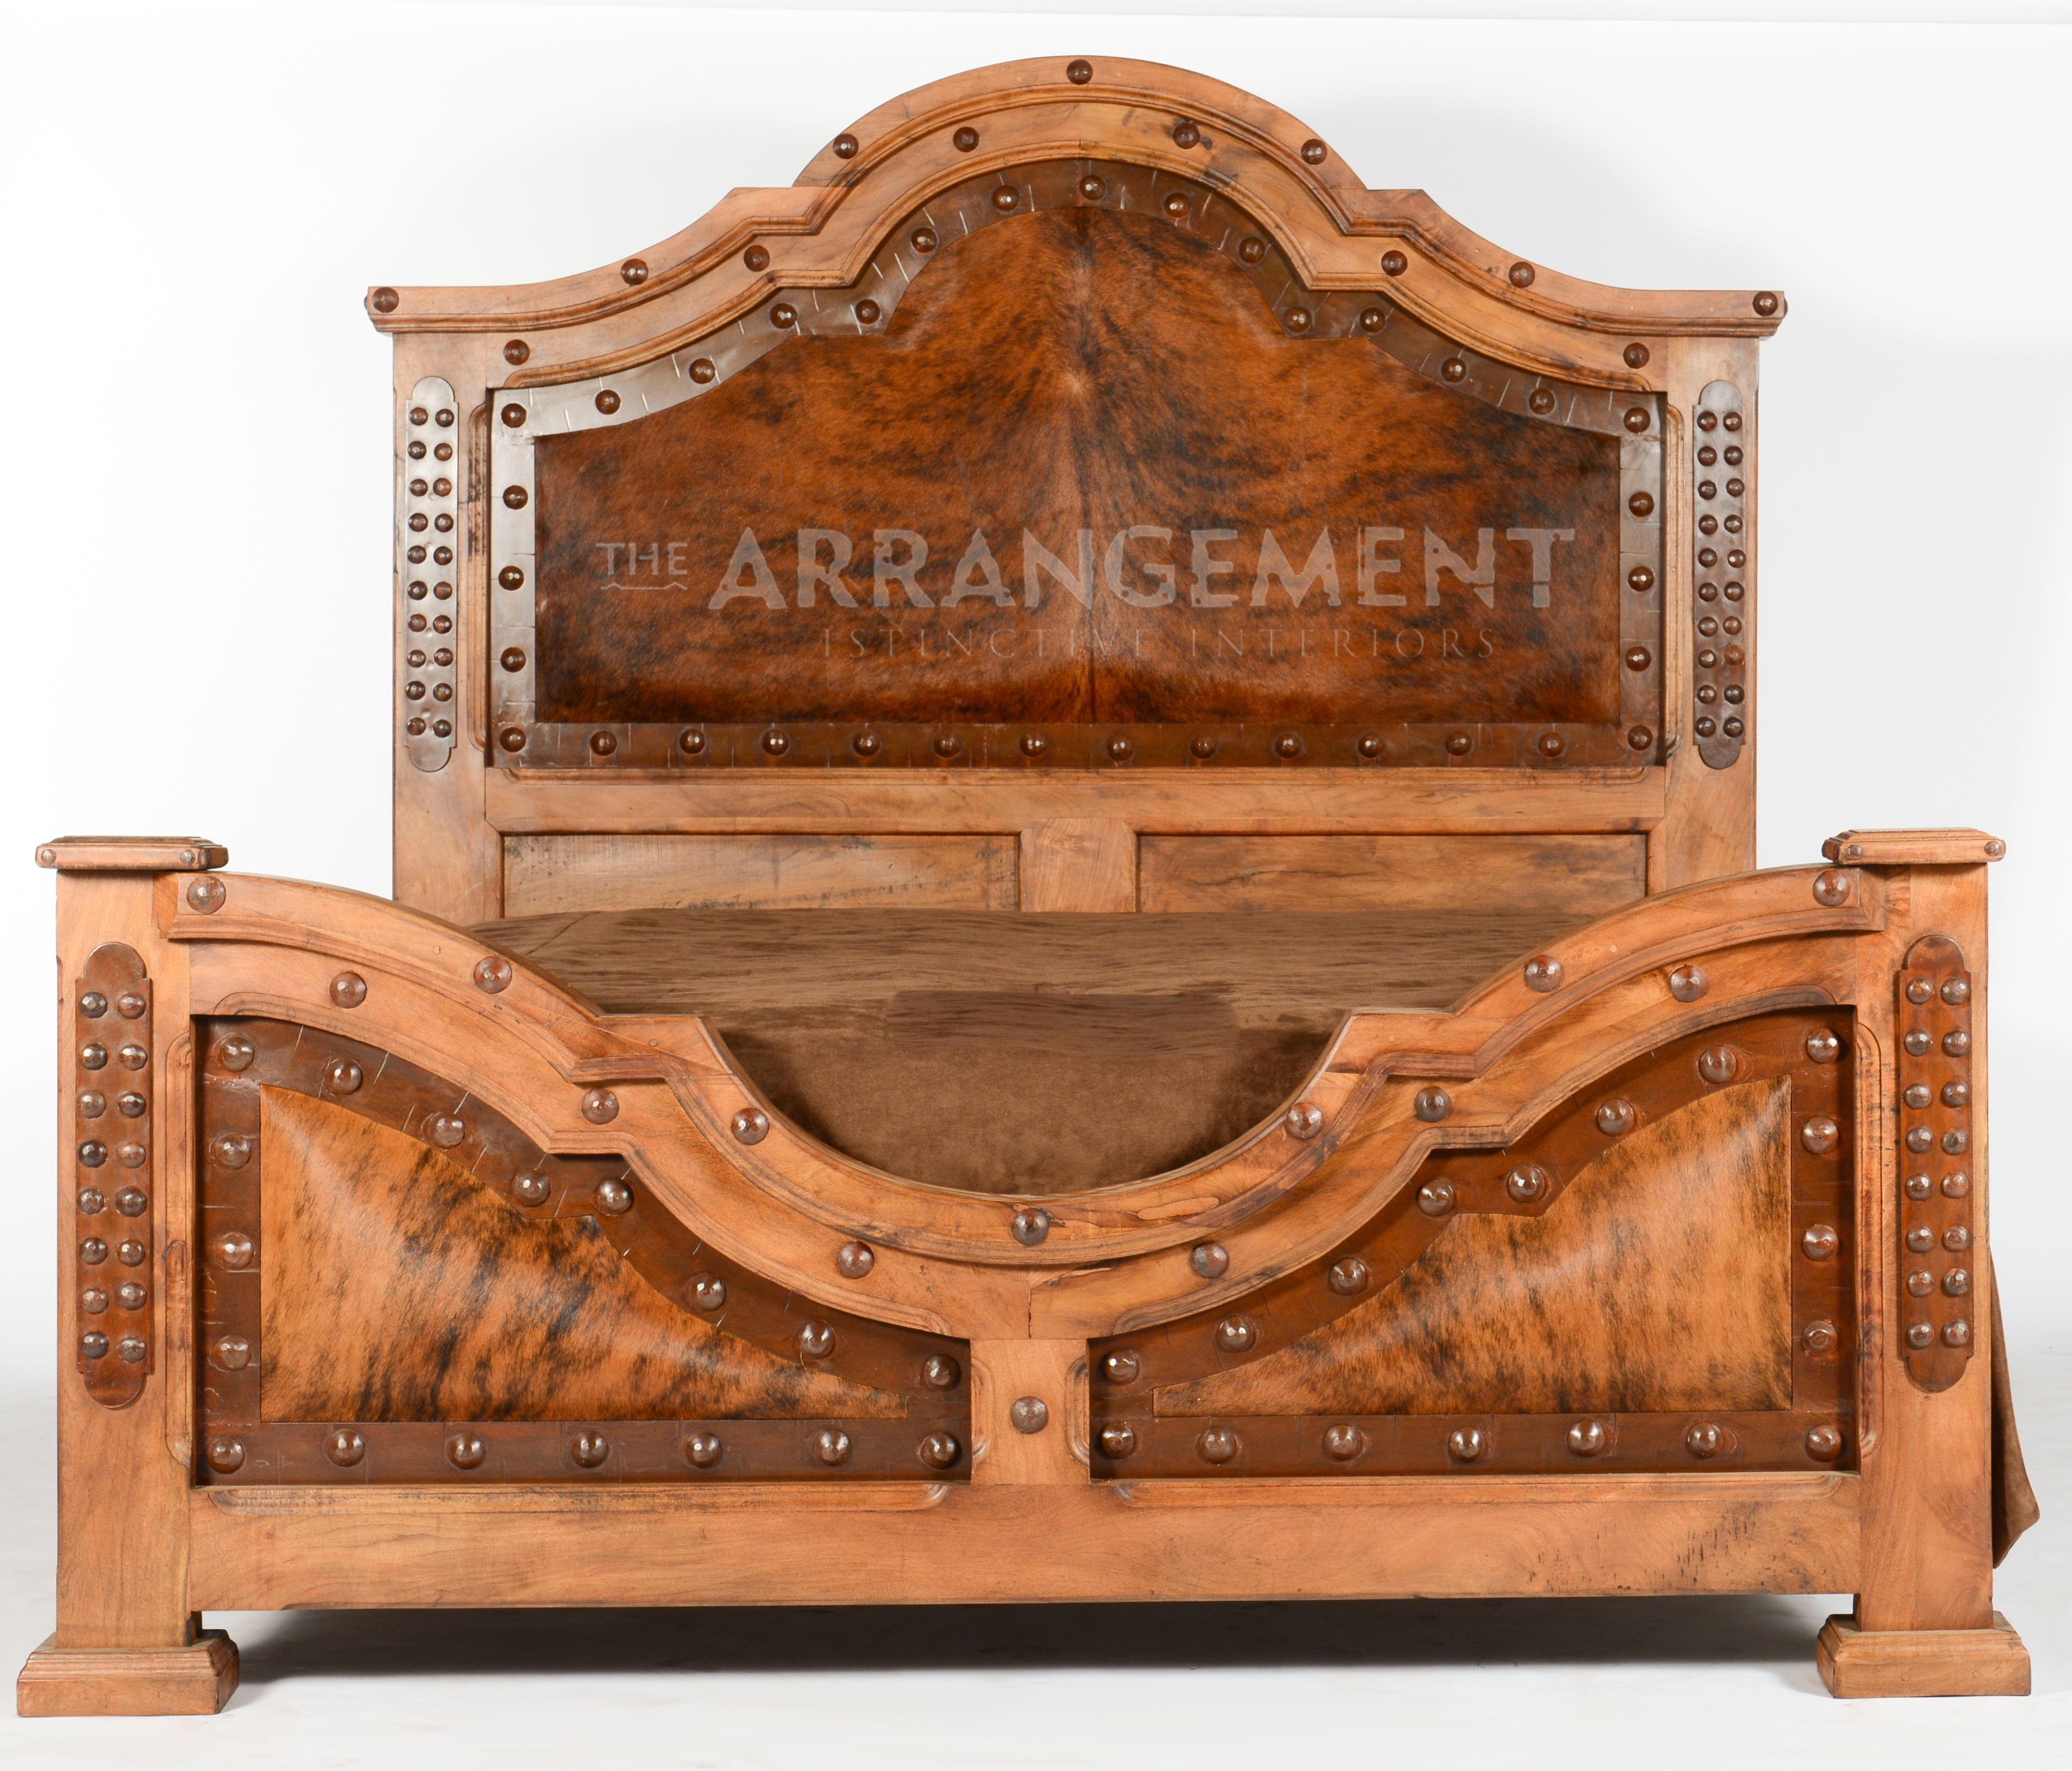 beds made headboard bed headboards wood for full girls box western single spring white kids bedroommesmerizing water of size bunk wooden home